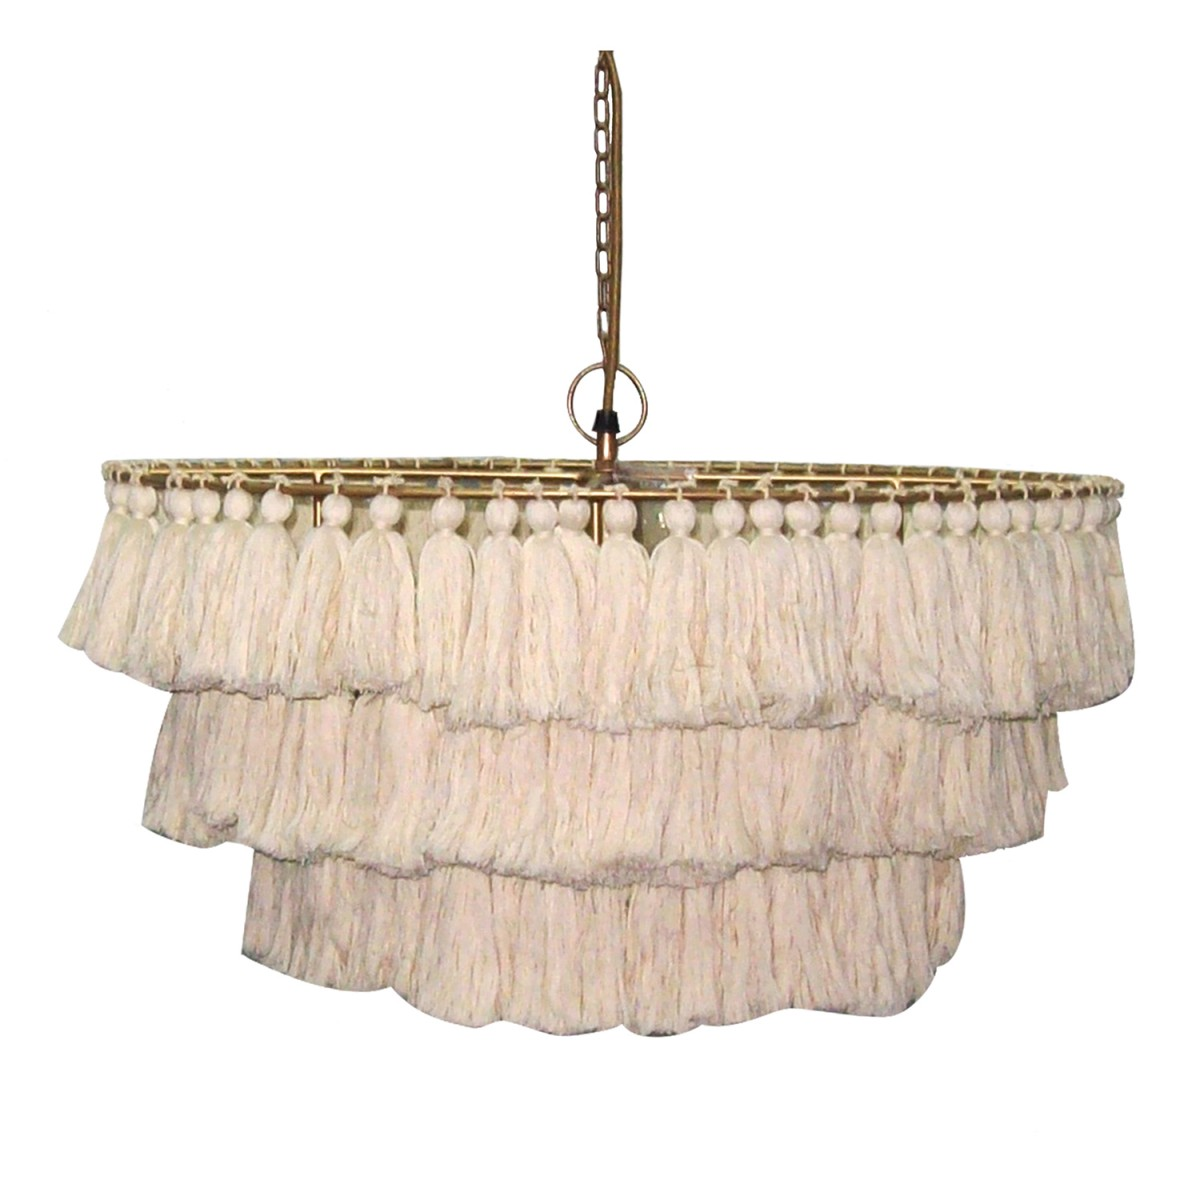 Unique Colorful Boho Cowgirl Girls Bedroom Design DIY Tassel Fringe Lighting Tasseled Chandelier